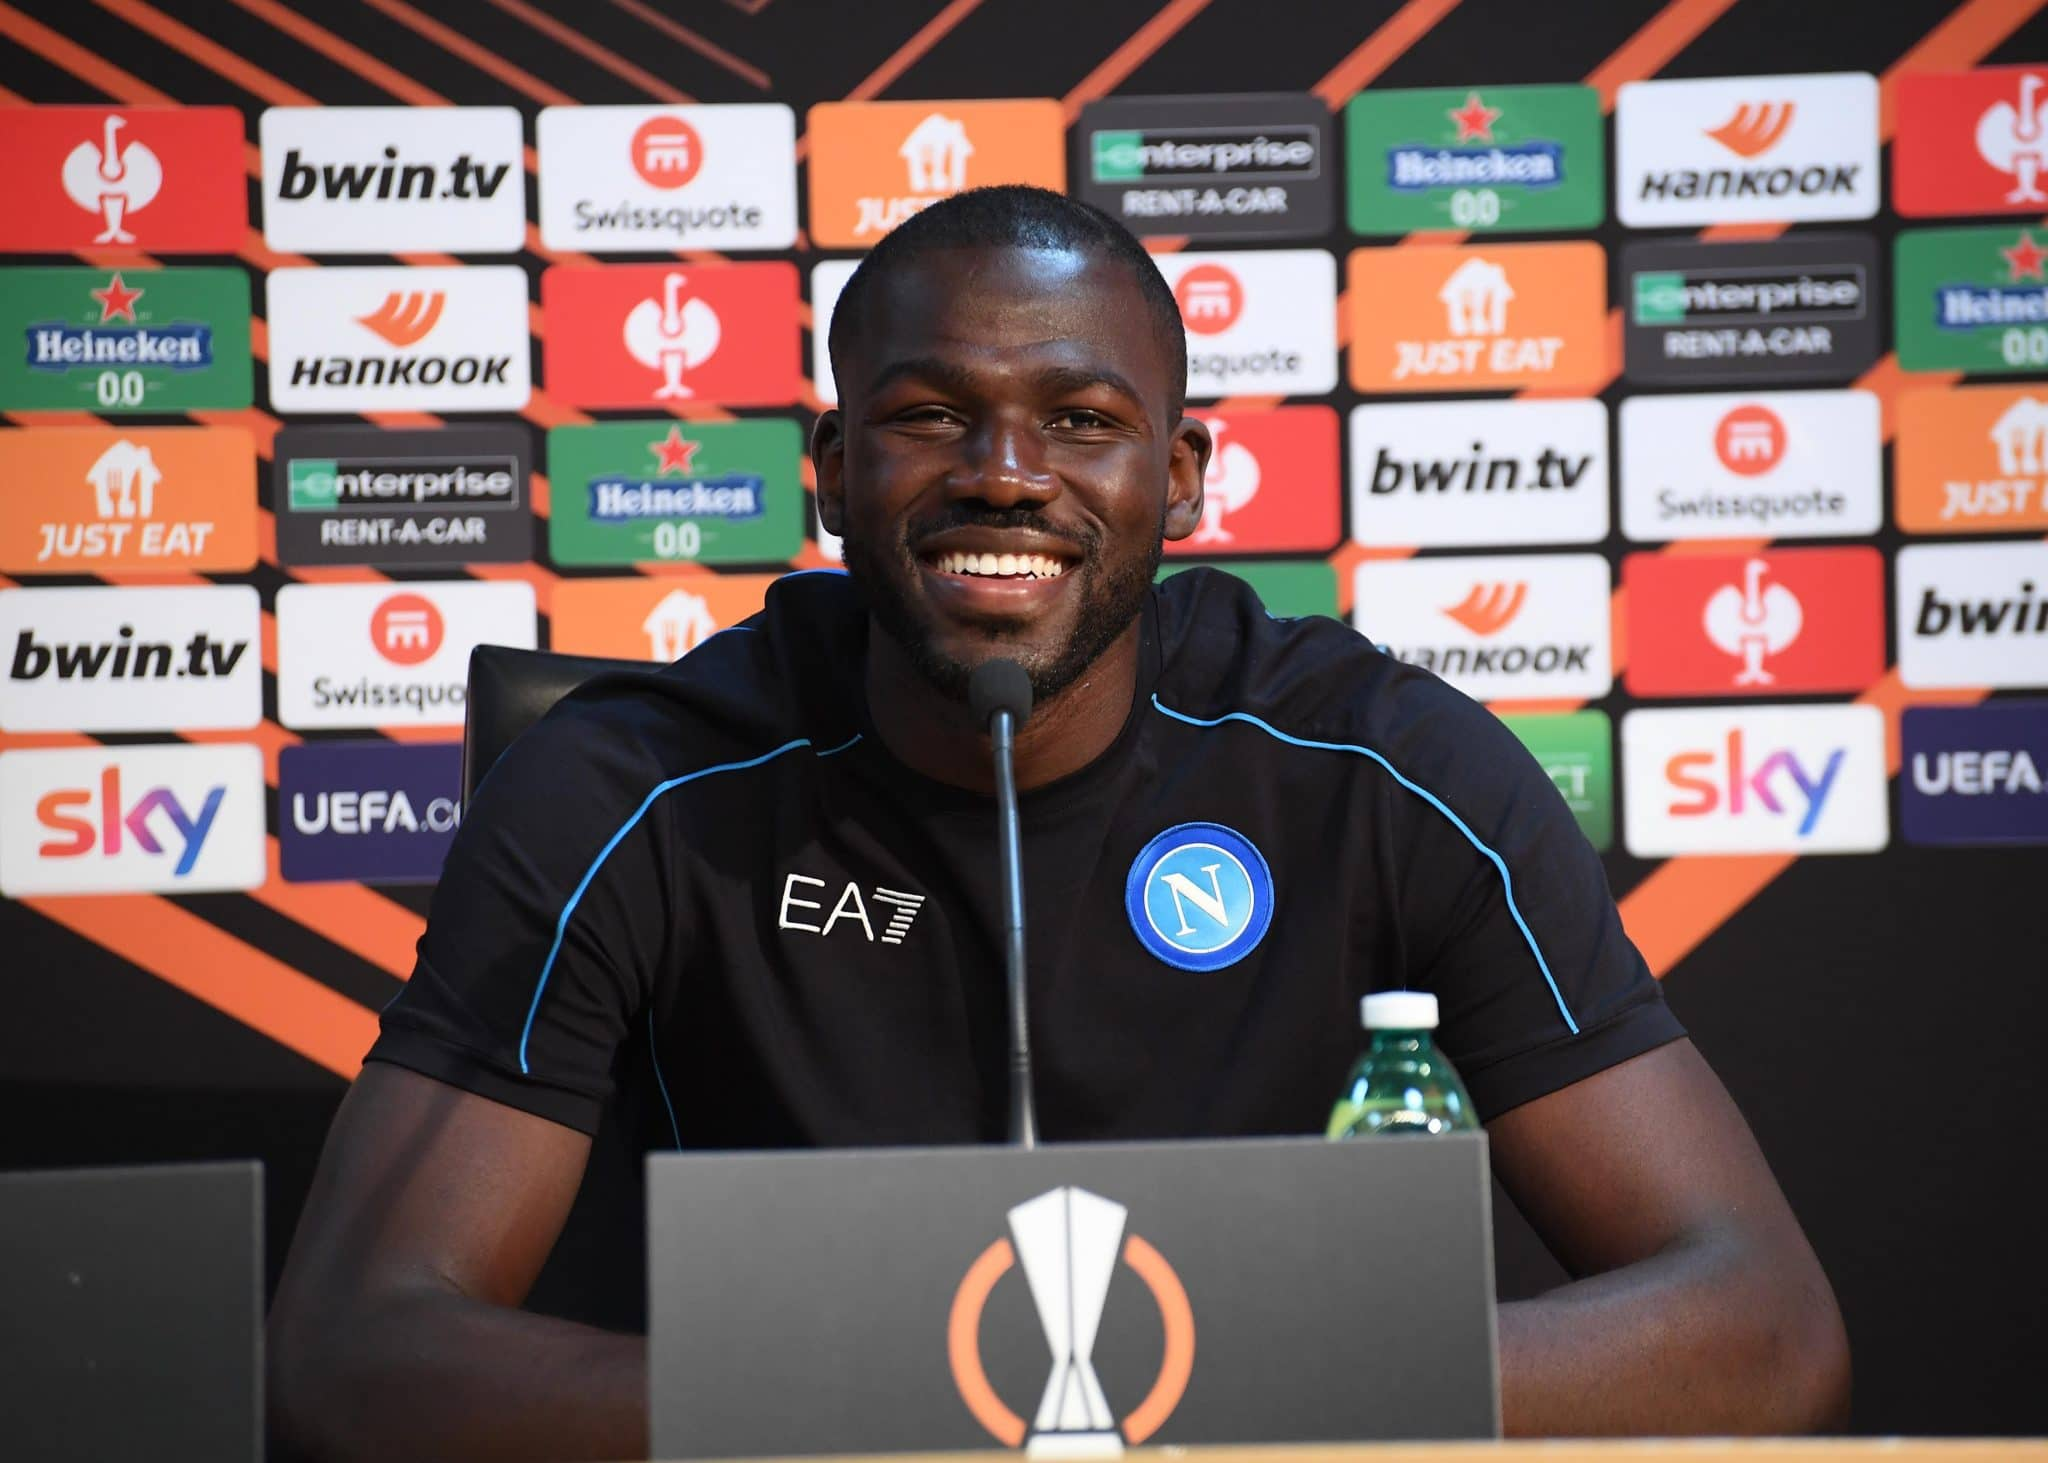 NAPLES, ITALY - OCTOBER 20: Kalidou Koulibaly speaks at a SSC Napoli press conference, on the eve of their UEFA Europa League Group C match against Legia Warszawa, on October 20, 2021 in Naples, Italy. (Photo by SSC NAPOLI/SSC NAPOLI via Getty Images)